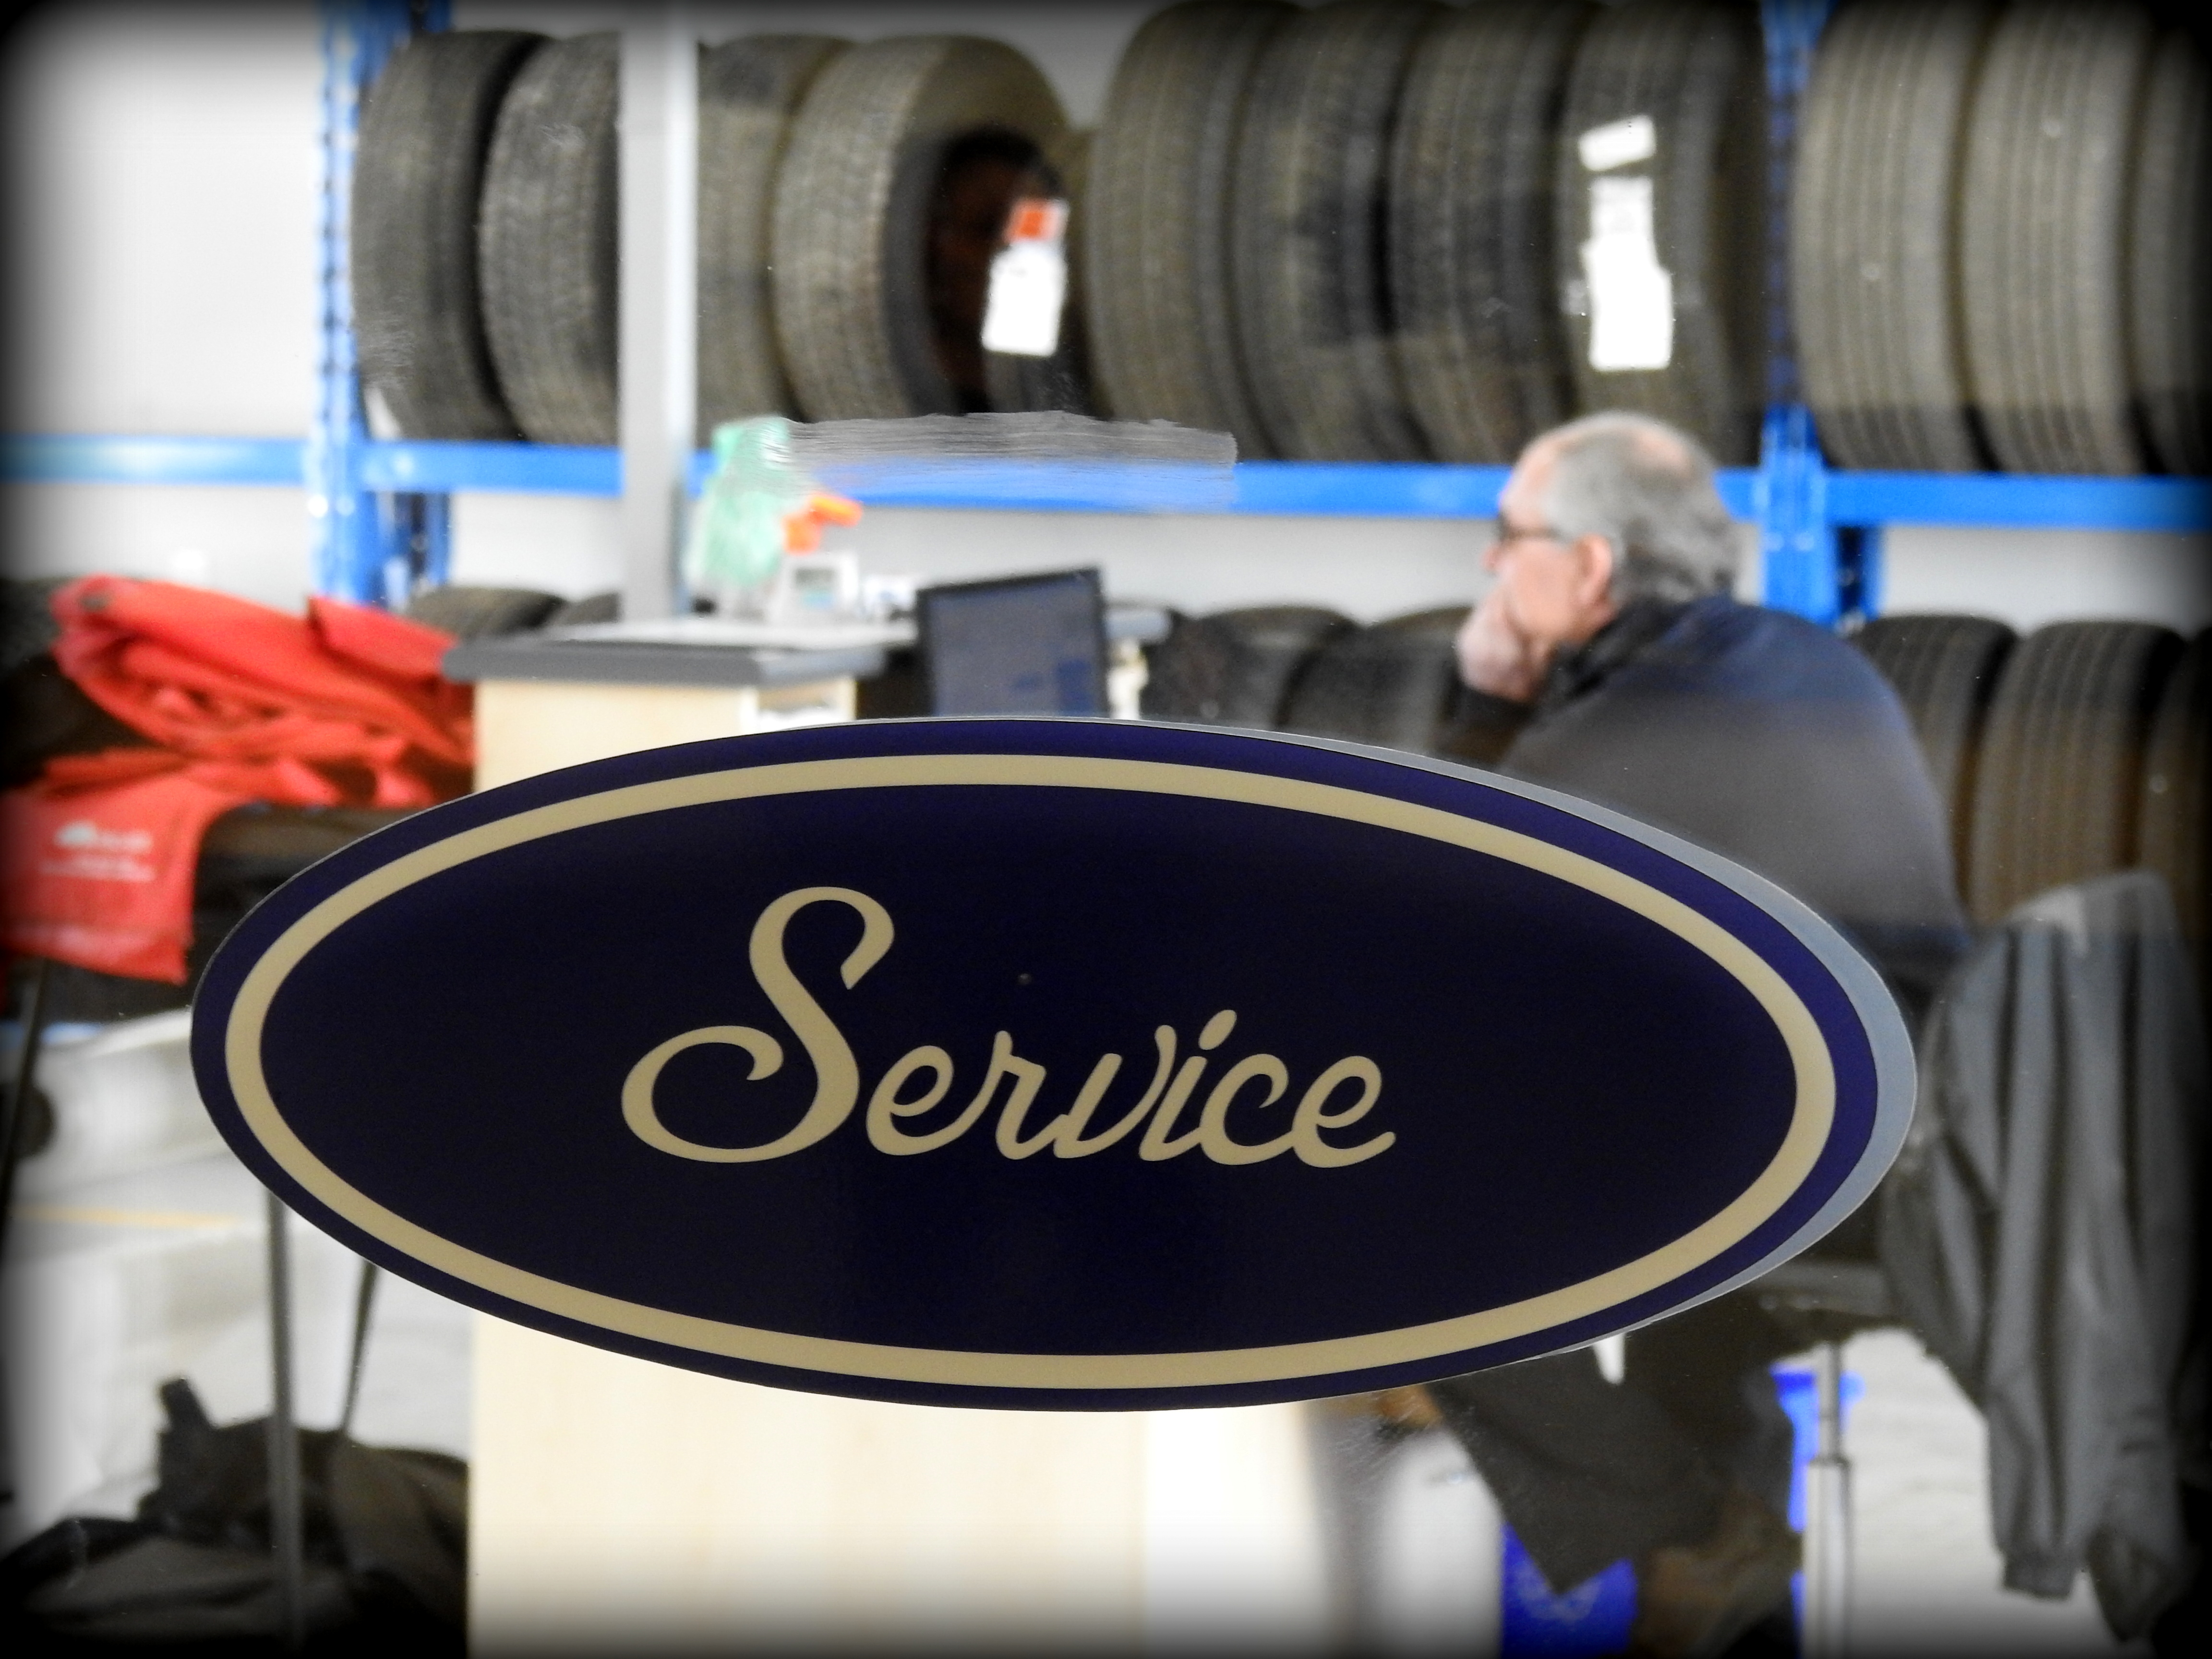 Getting Your Vehicle Serviced At Tusket Ford -- Service Is Who We Are!